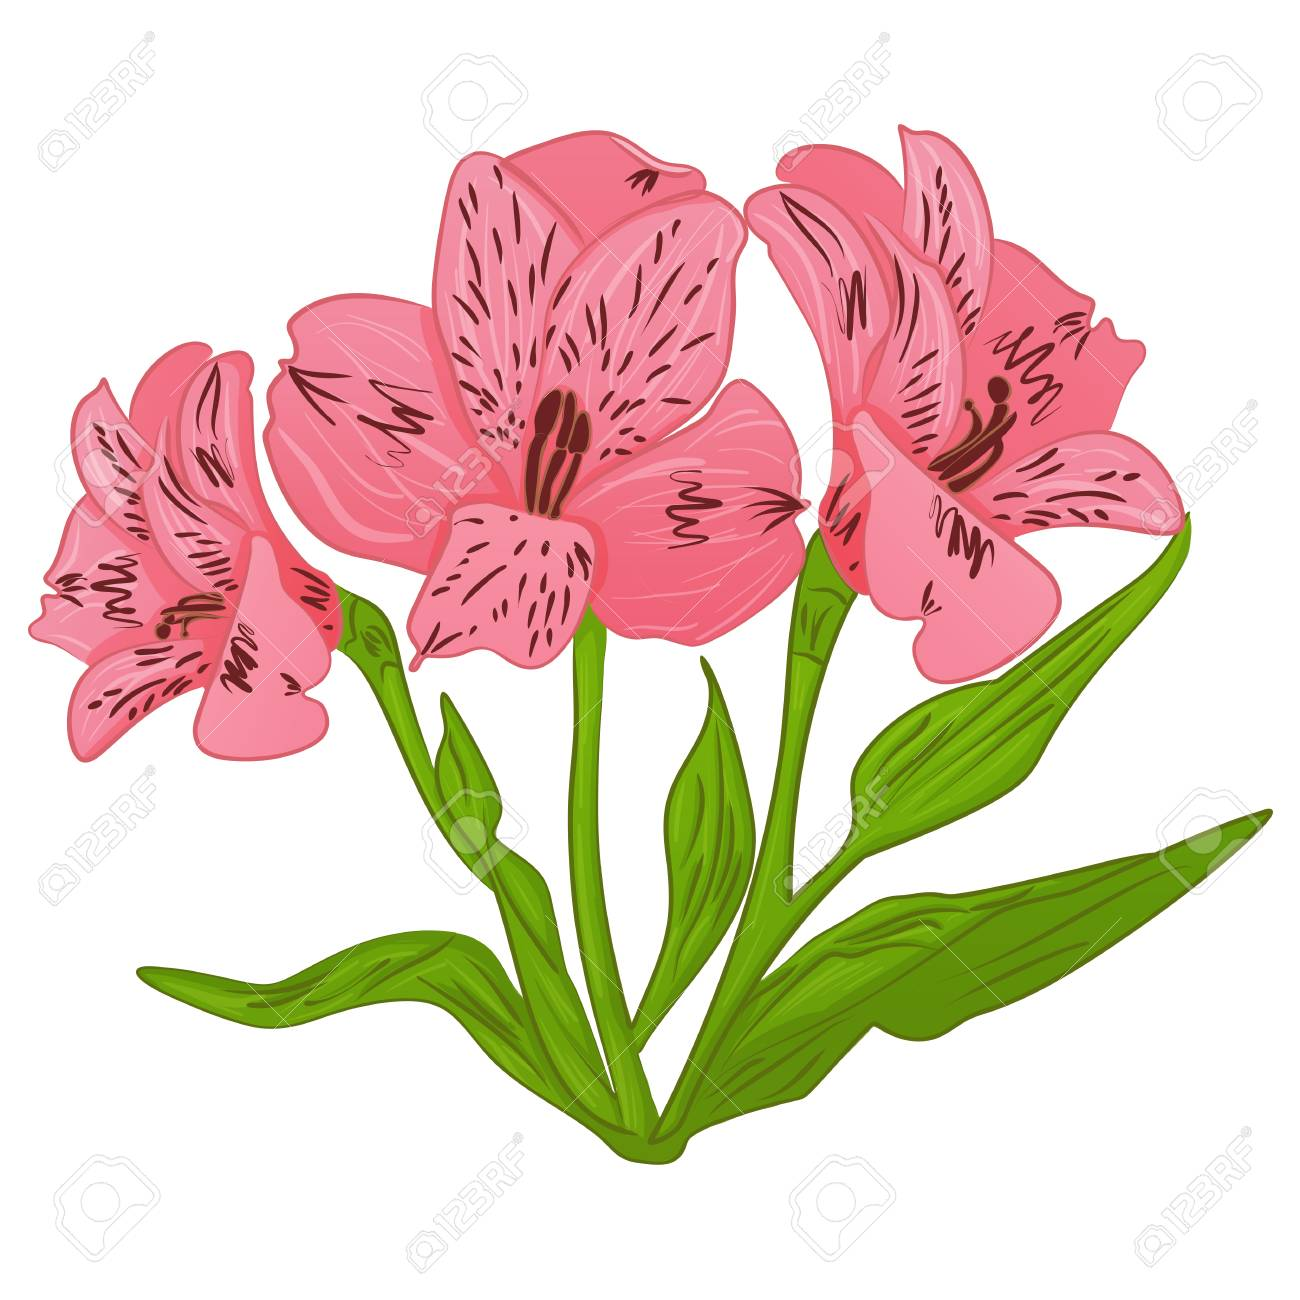 Cartoon flower alstroemeria and green leaves vector on a white cartoon flower alstroemeria and green leaves vector on a white background stock vector 64551855 izmirmasajfo